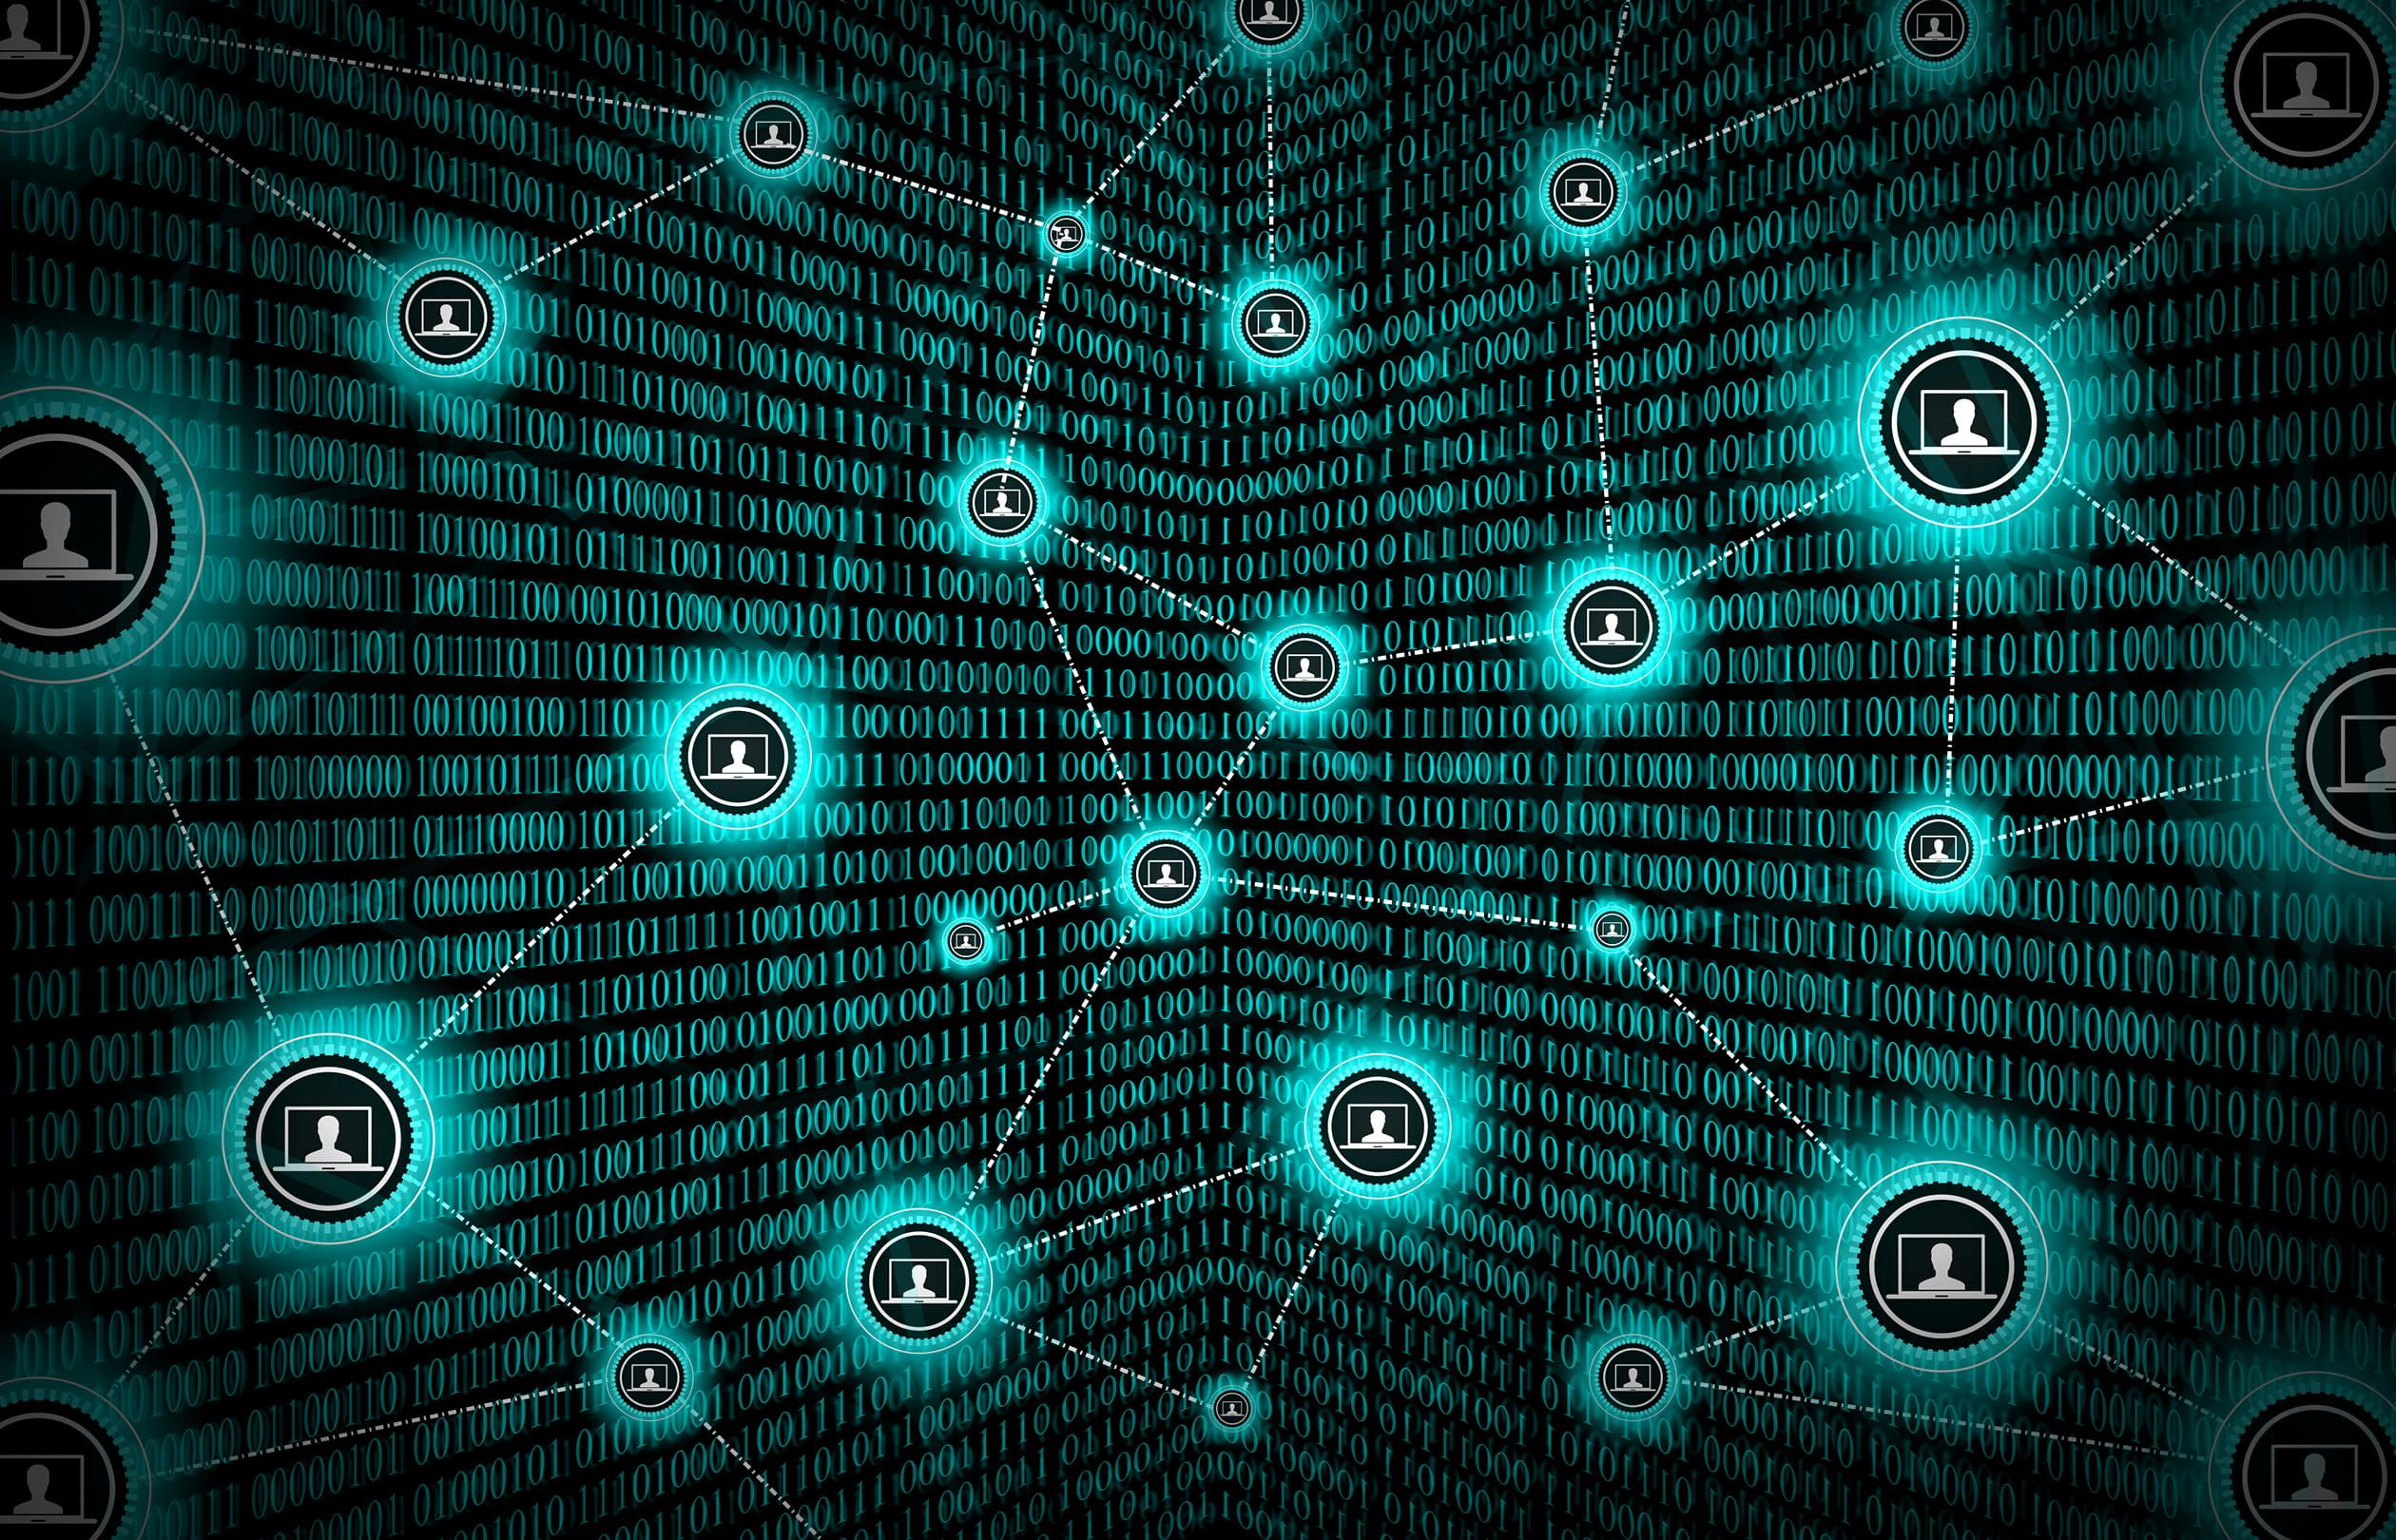 Block chain network concept distributed ledger